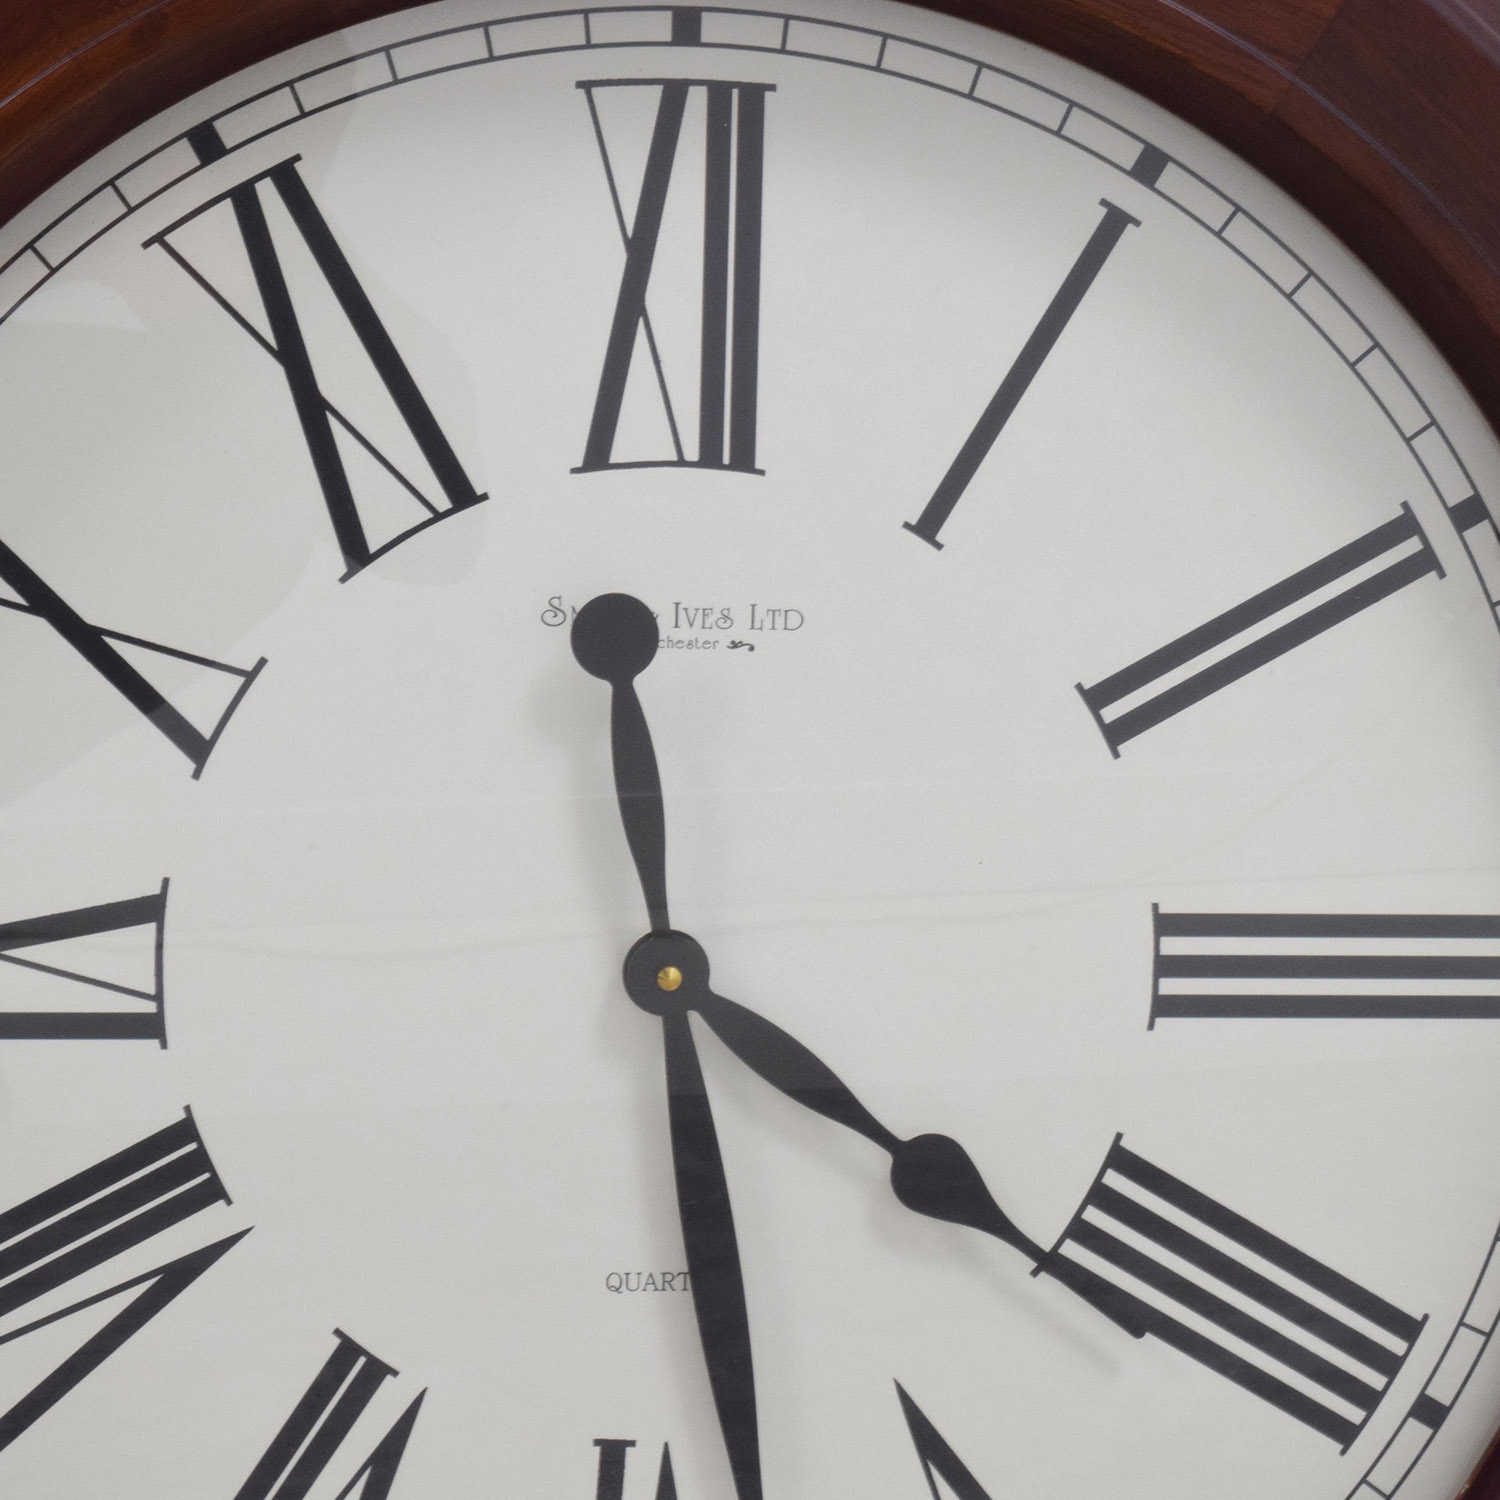 Smith Ives LTD Smith Ives Roman Numeral Clock in Wood Frame second hand